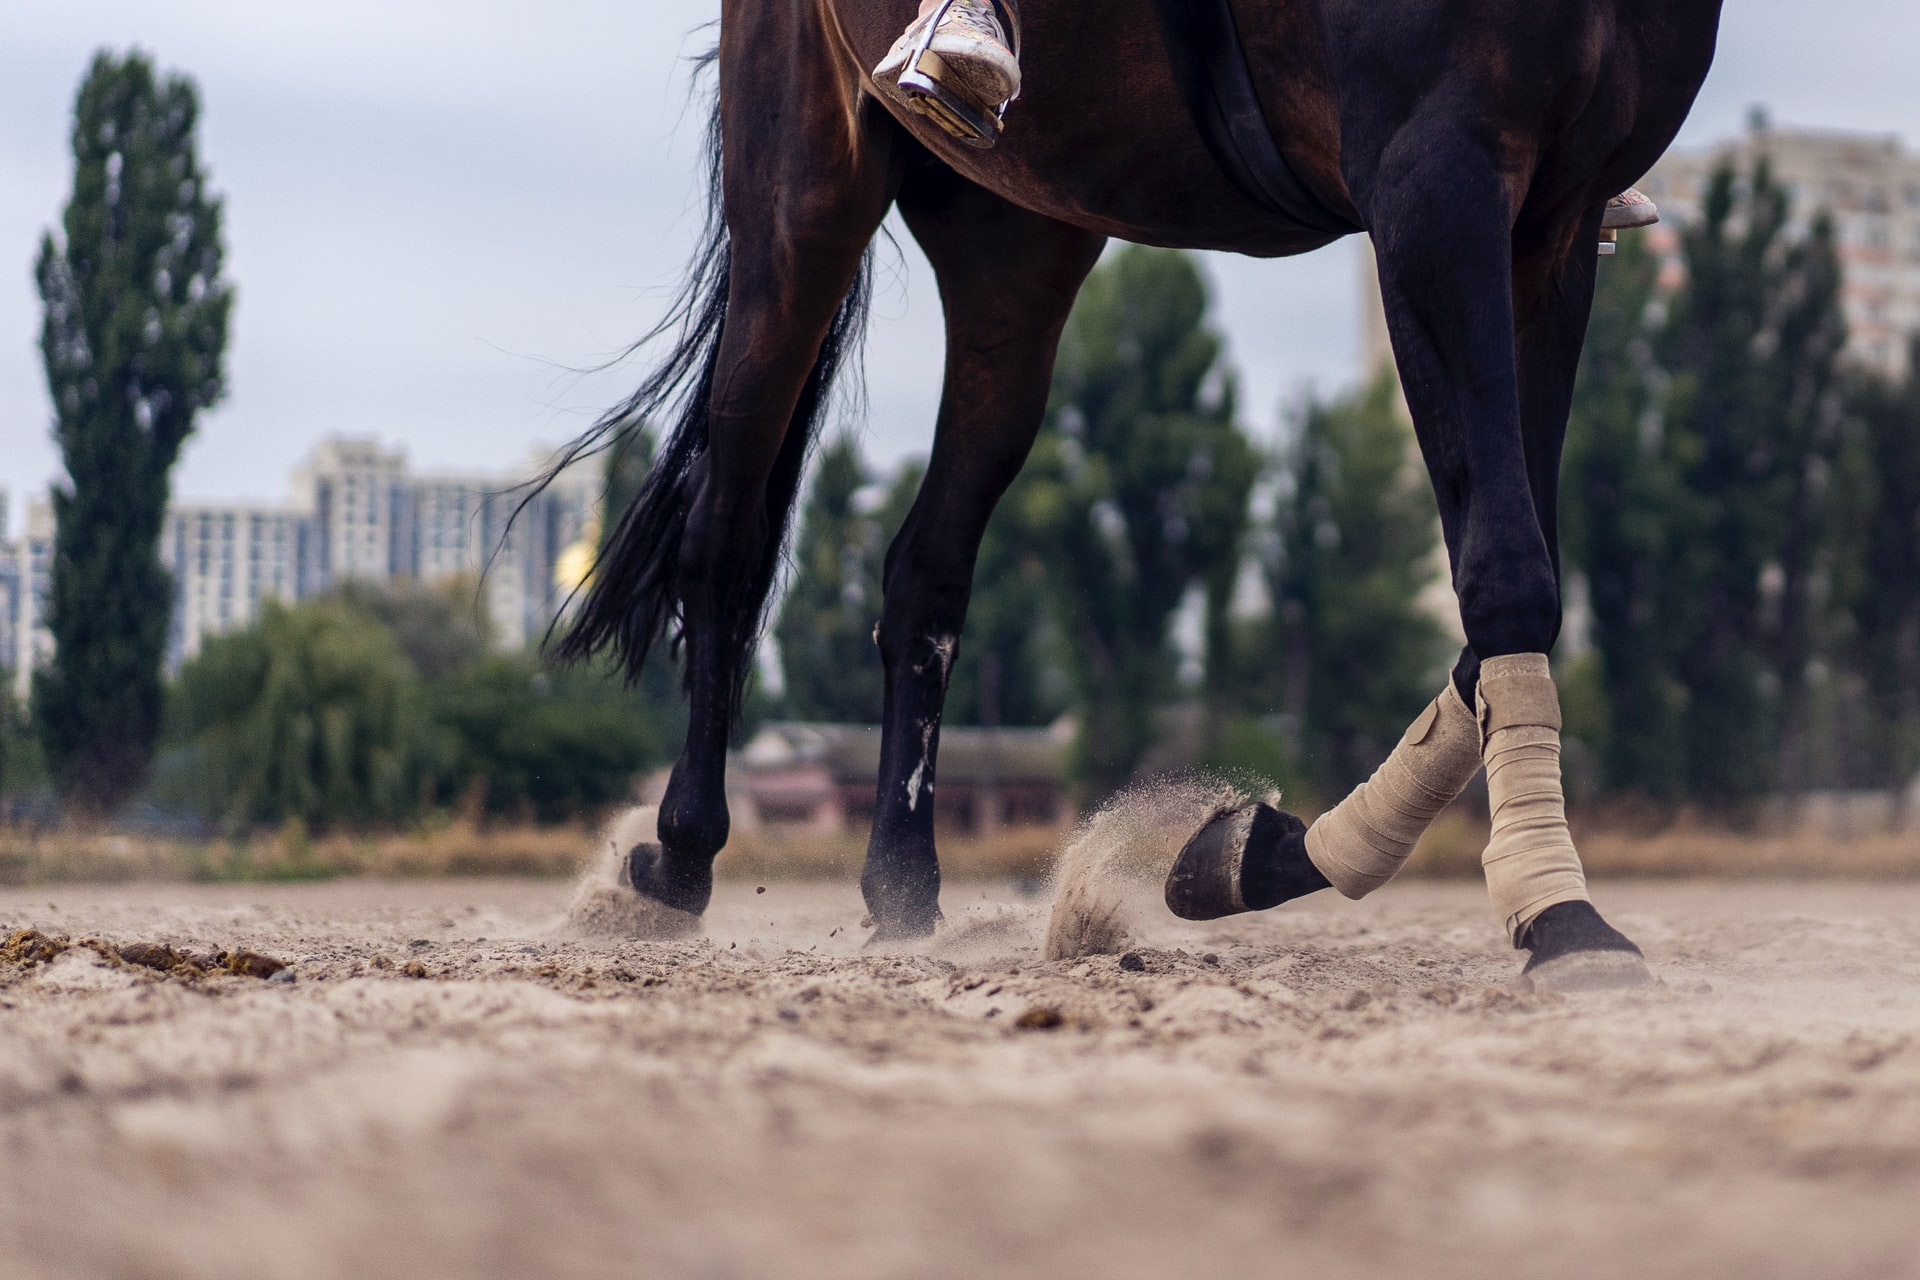 A horse in a training ring, bottom half showing with its legs in motion.